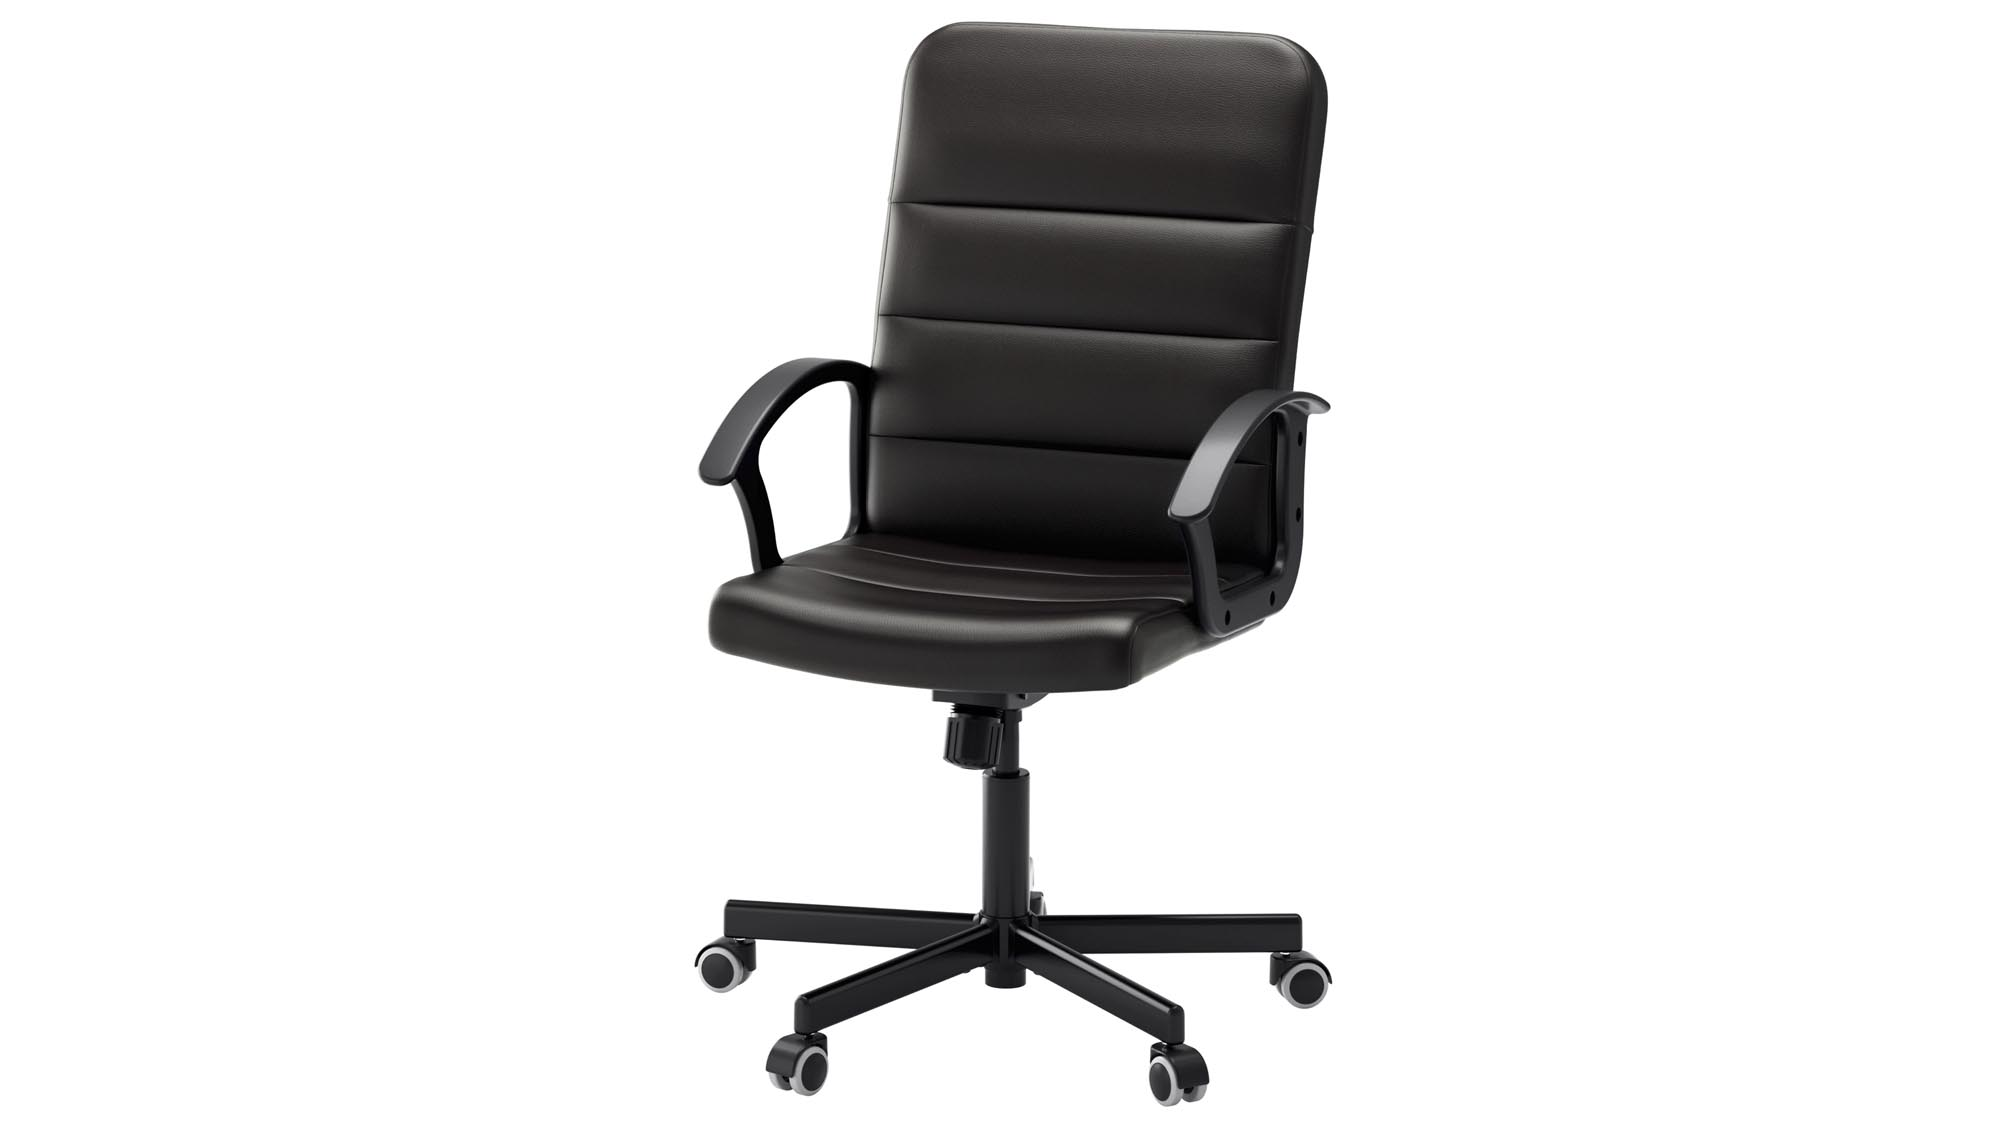 Merveilleux Weu0027re Not Going To Pretend That This Is On Par With Any Of The Other Far  More Sophisticated Office Chairs In This Roundup. However, If Youu0027re Really  ...